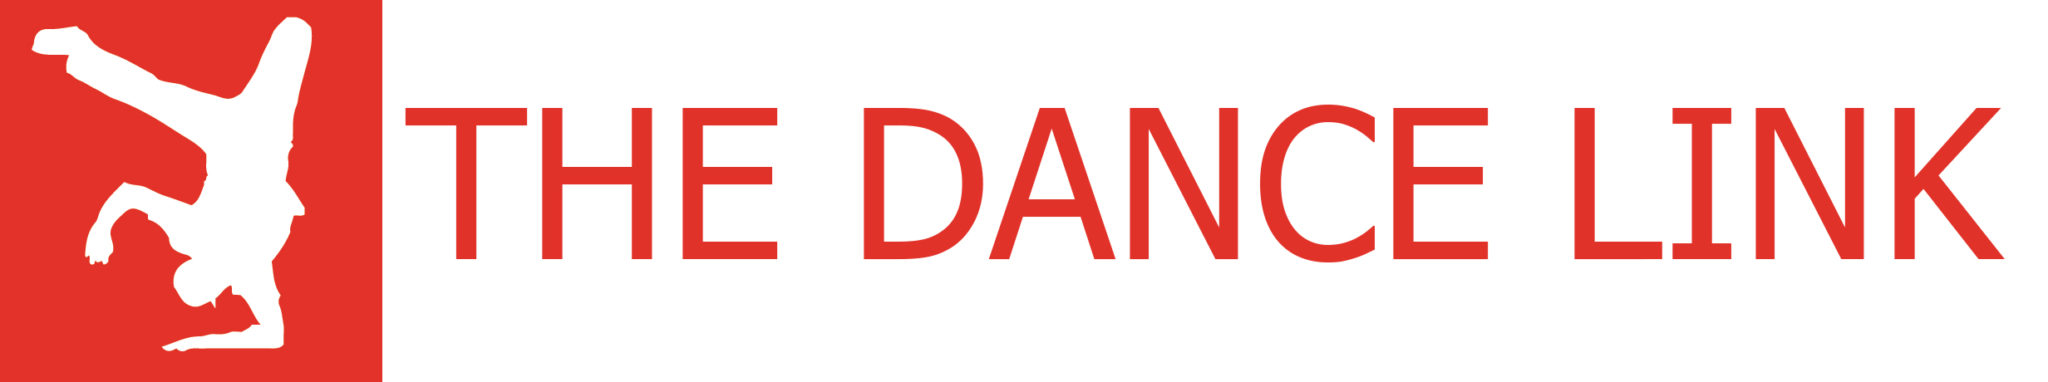 the dance link logo WITH TITLE